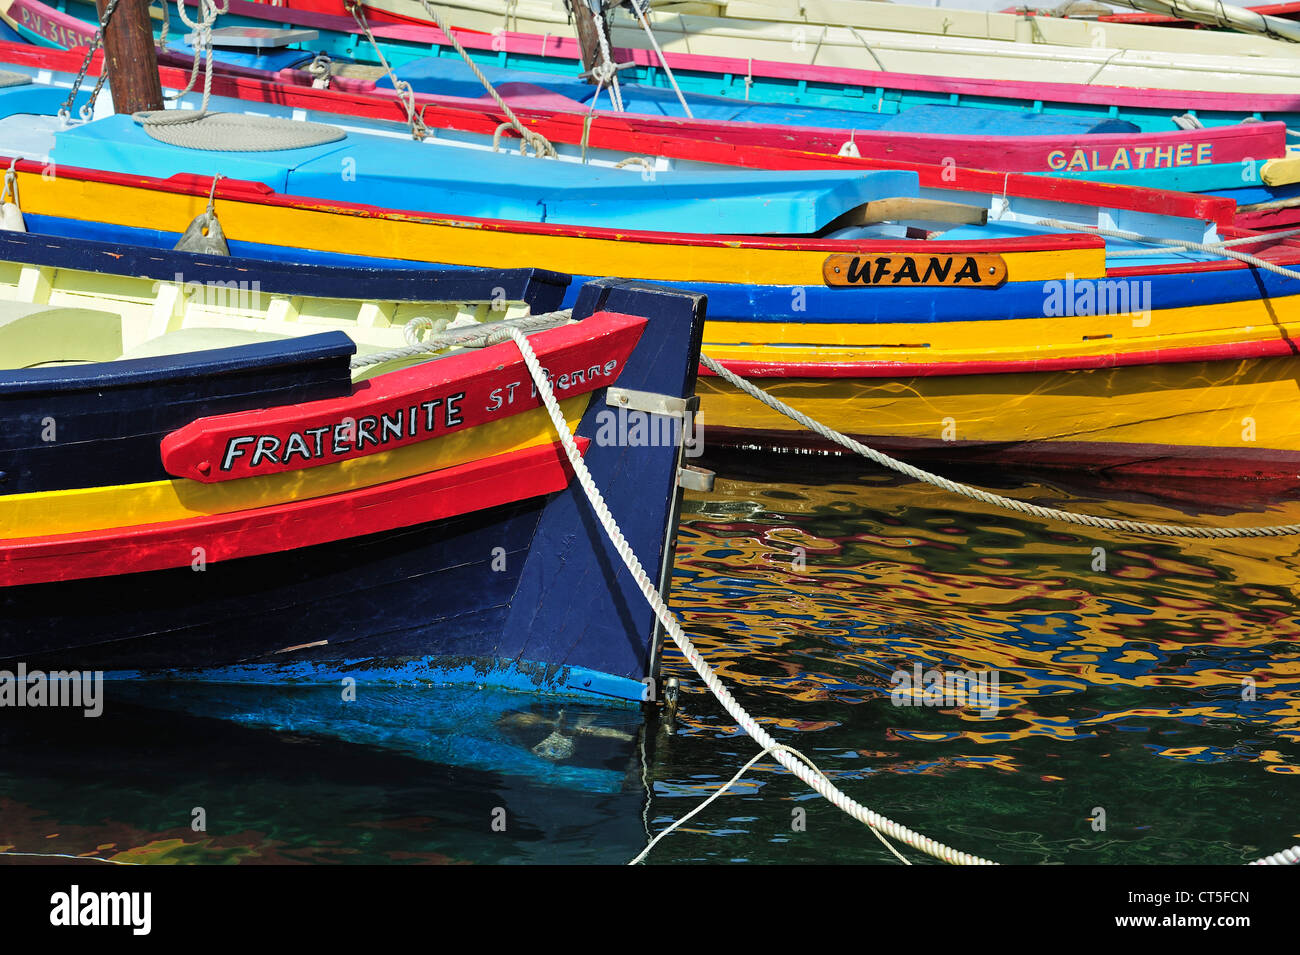 Traditional colourful fishing boats for fishing anchovies in the harbour at Collioure, Pyrénées-Orientales, - Stock Image